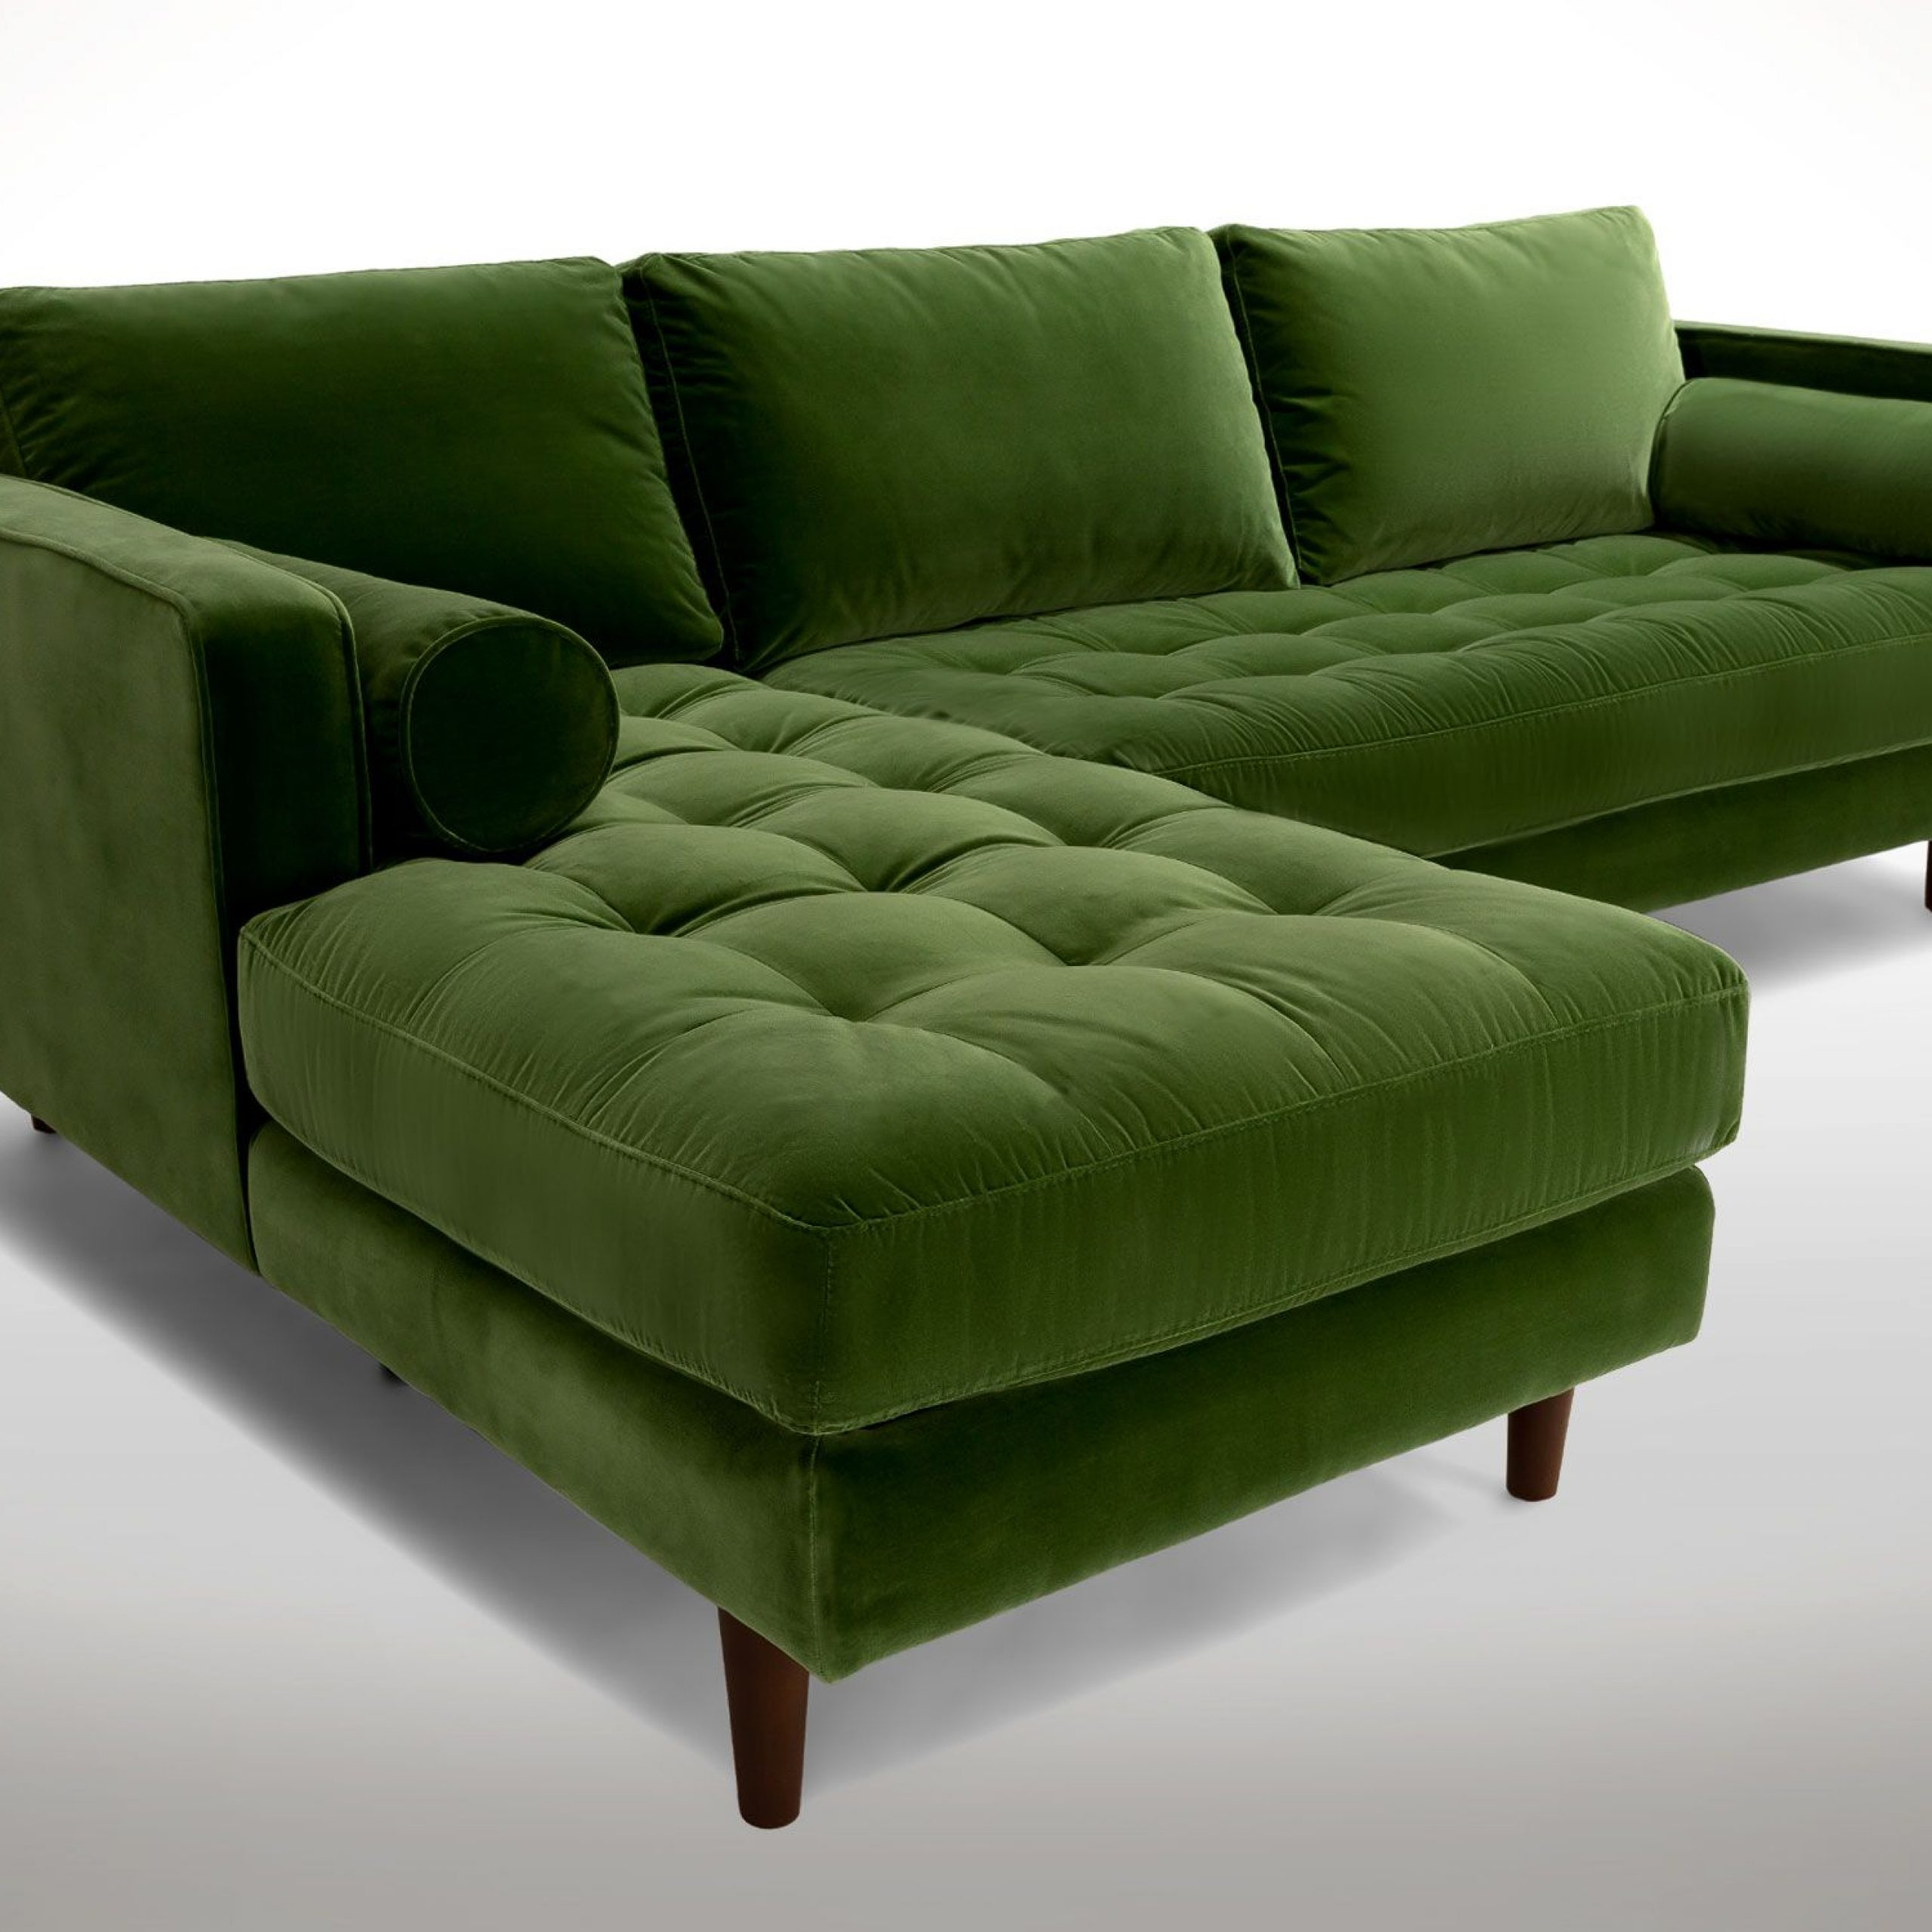 Sven Grass Green Right Sectional Sofa (View 10 of 20)